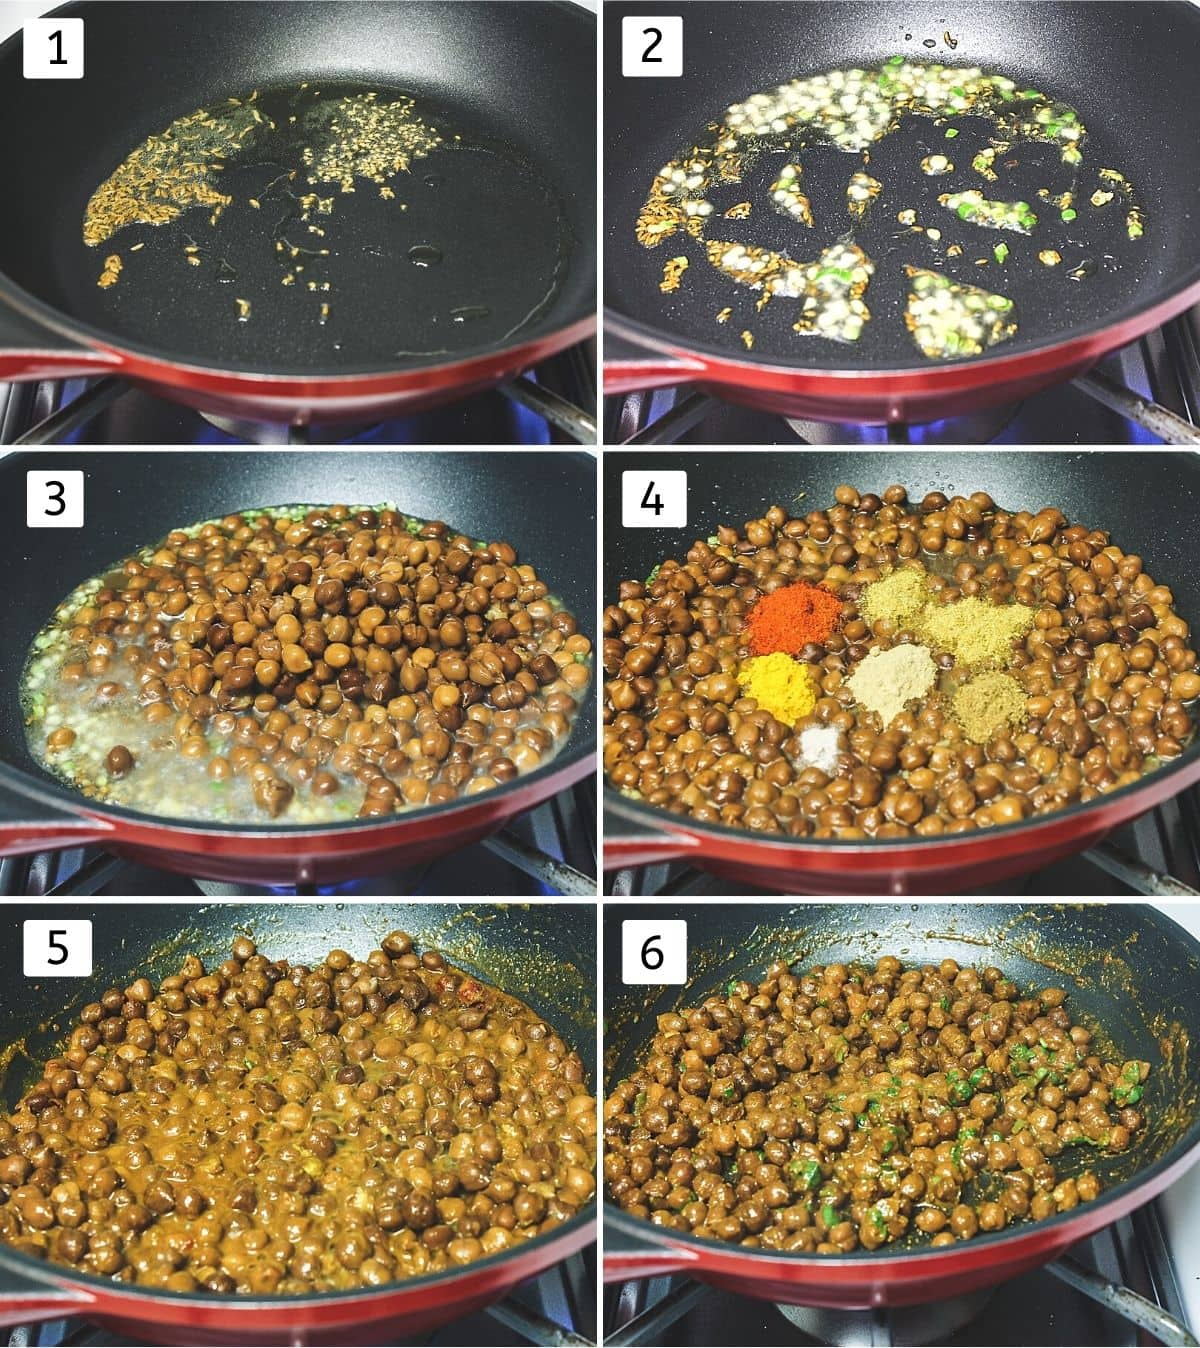 Collage of 6 steps showing cumin, ajwain in the oil, added ginger, green chili, added boiled chana, spices, simmer, add cilantro.